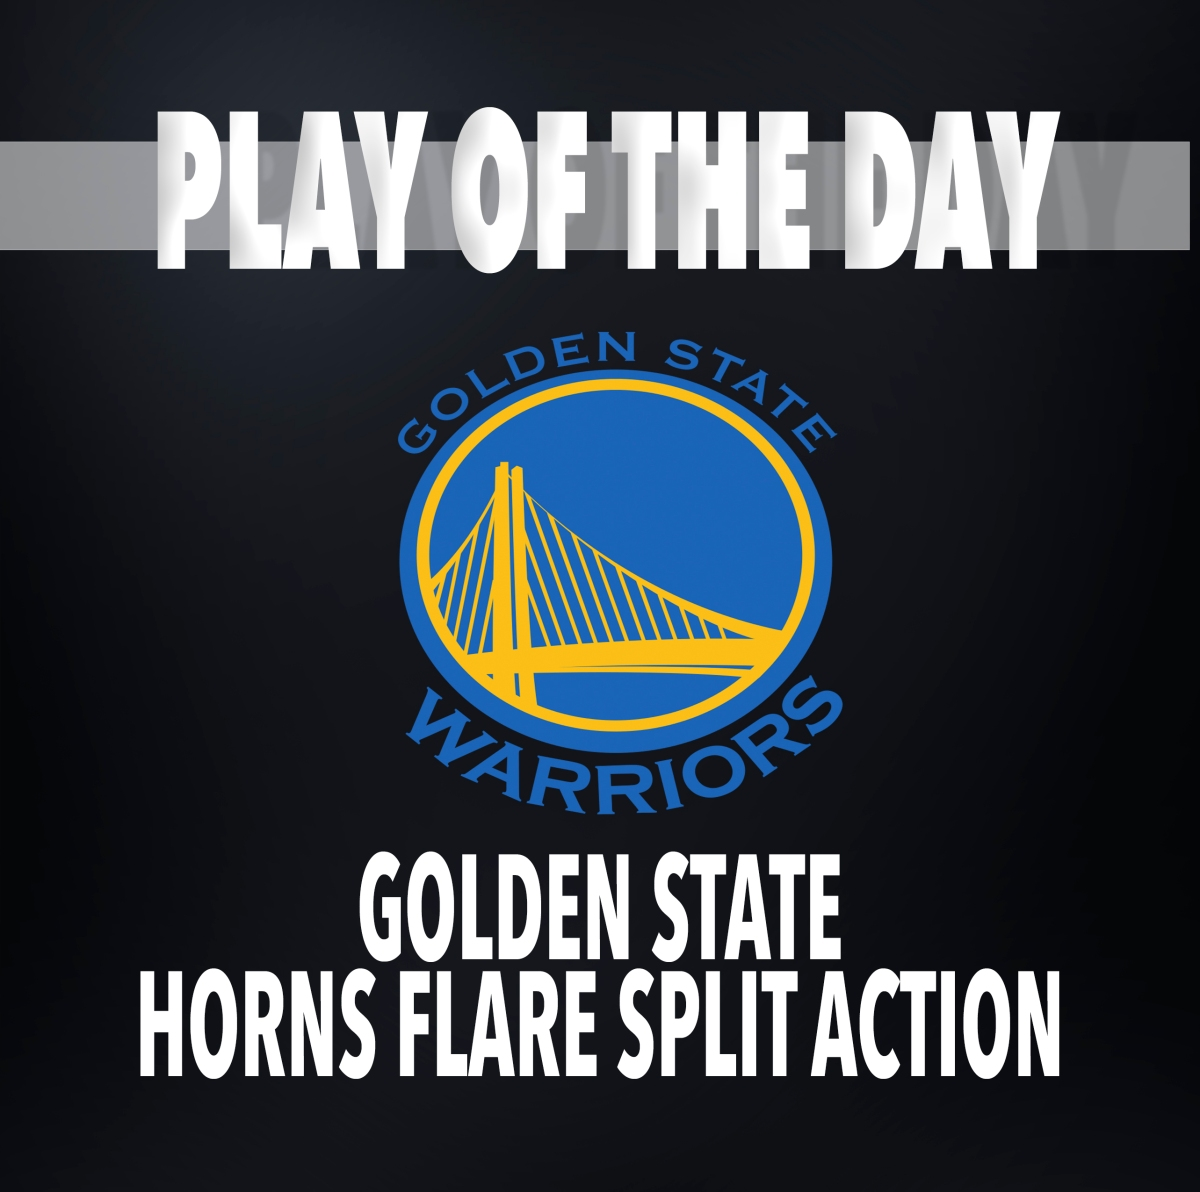 Golden State | Man Offense - Horns - Flare - Split Action